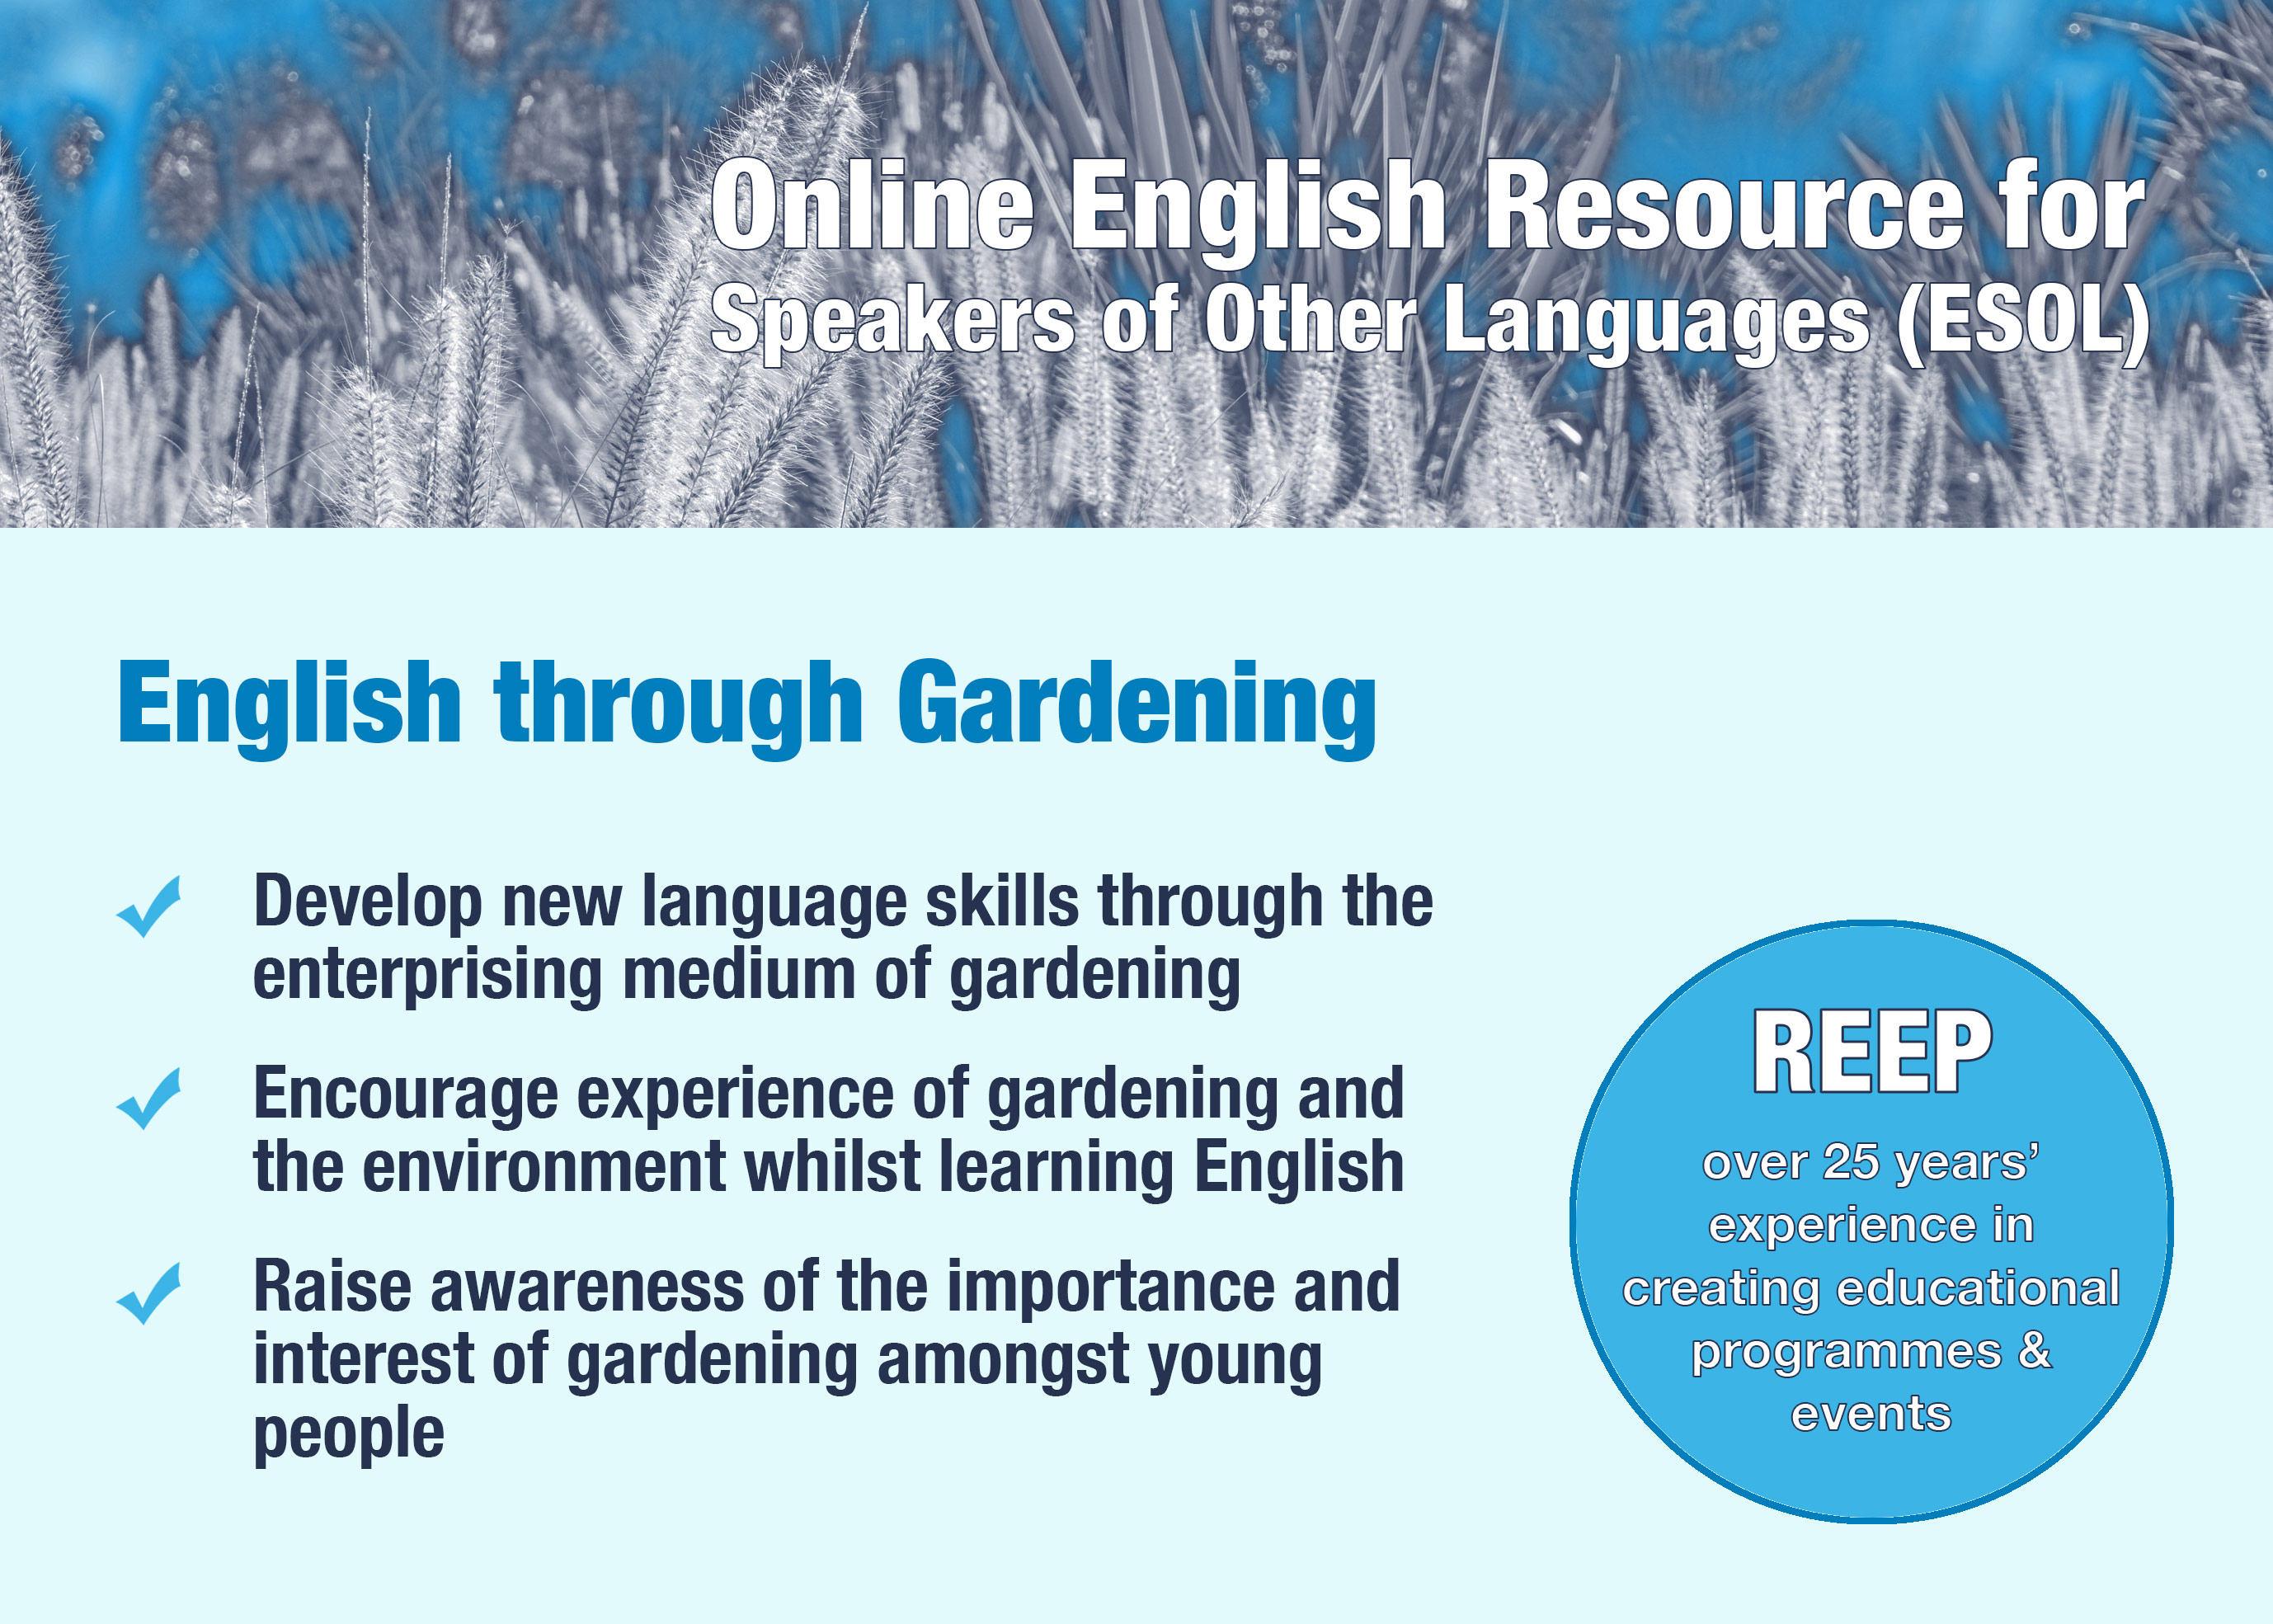 Online resource for Speakers of English as an Other Language (Level 2) - Aims and Objectives